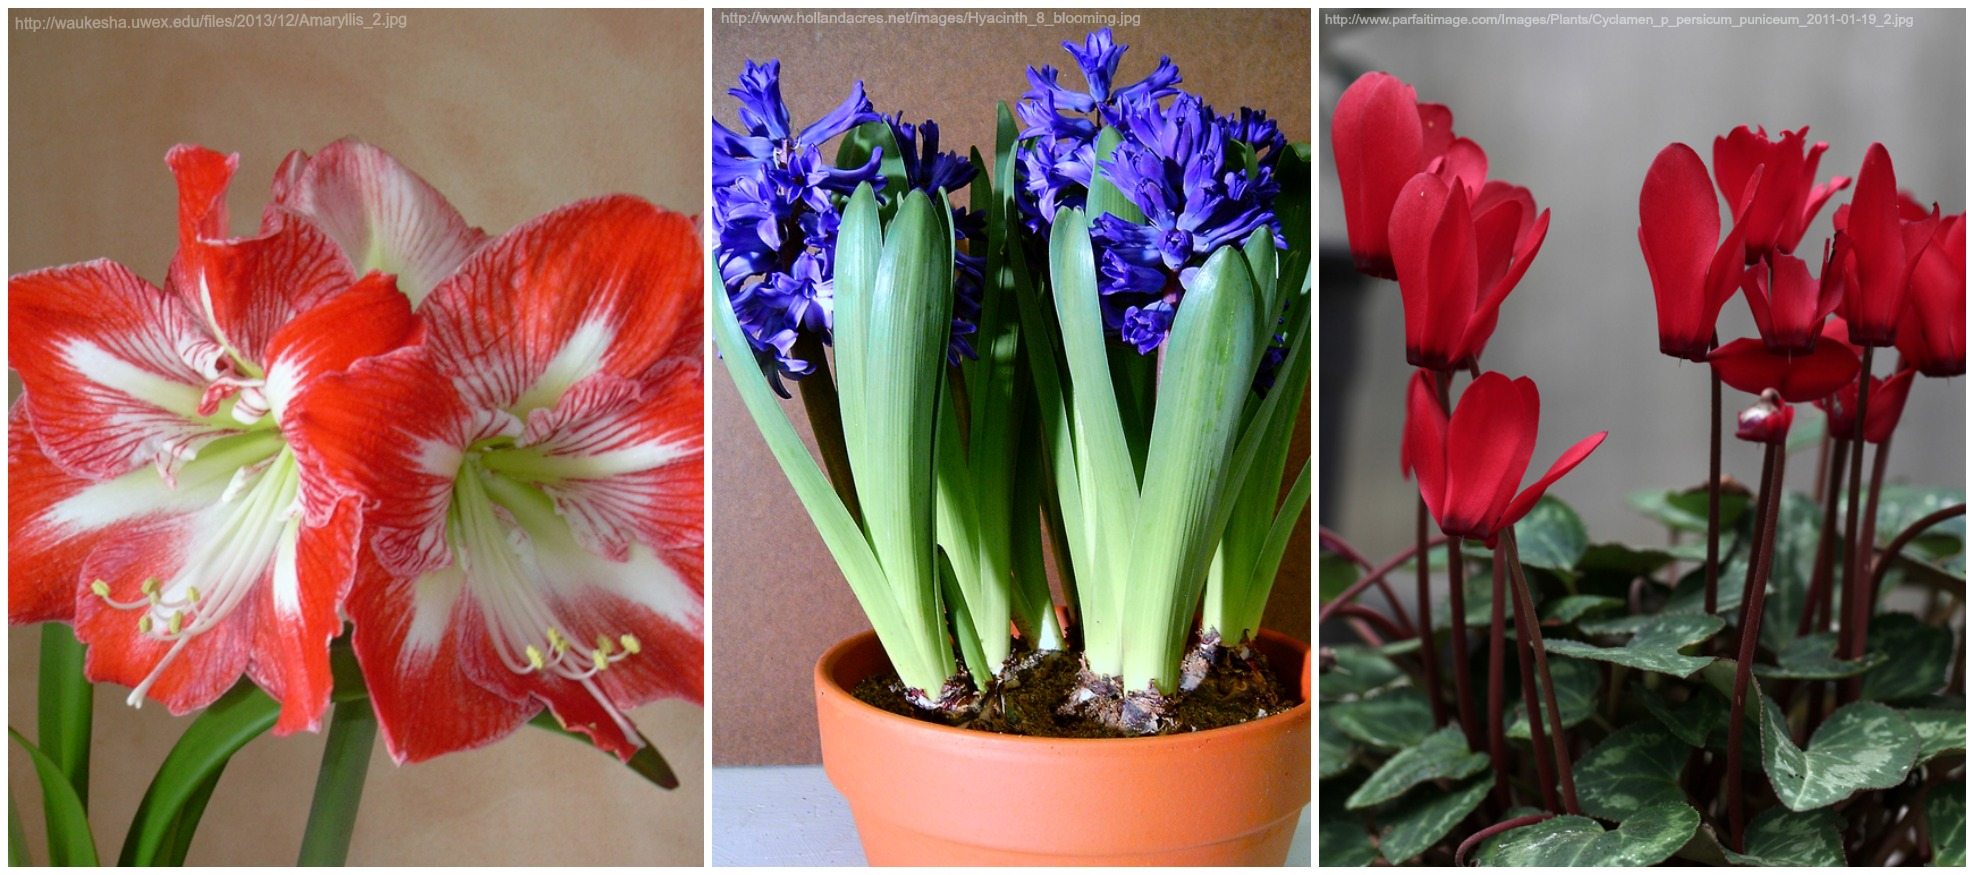 Winter plants to keep you smiling recommended by HMR Designs